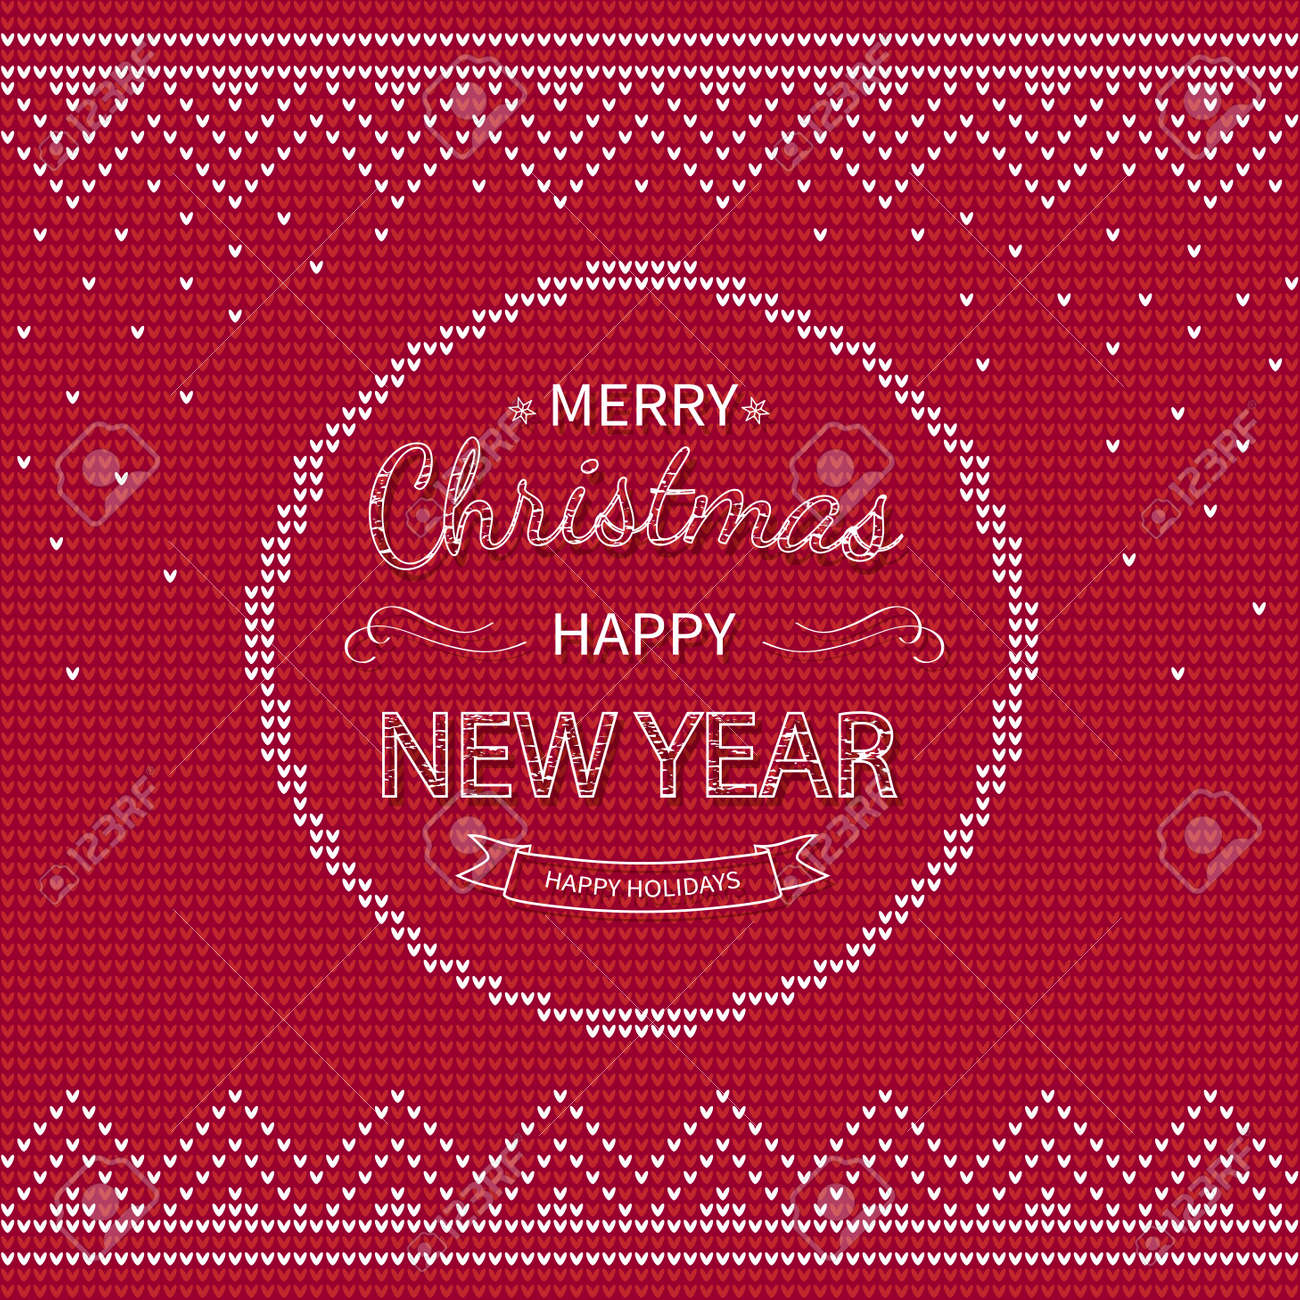 Merry Christmas and Happy New Year Greeting red knitted Background. - 155836506